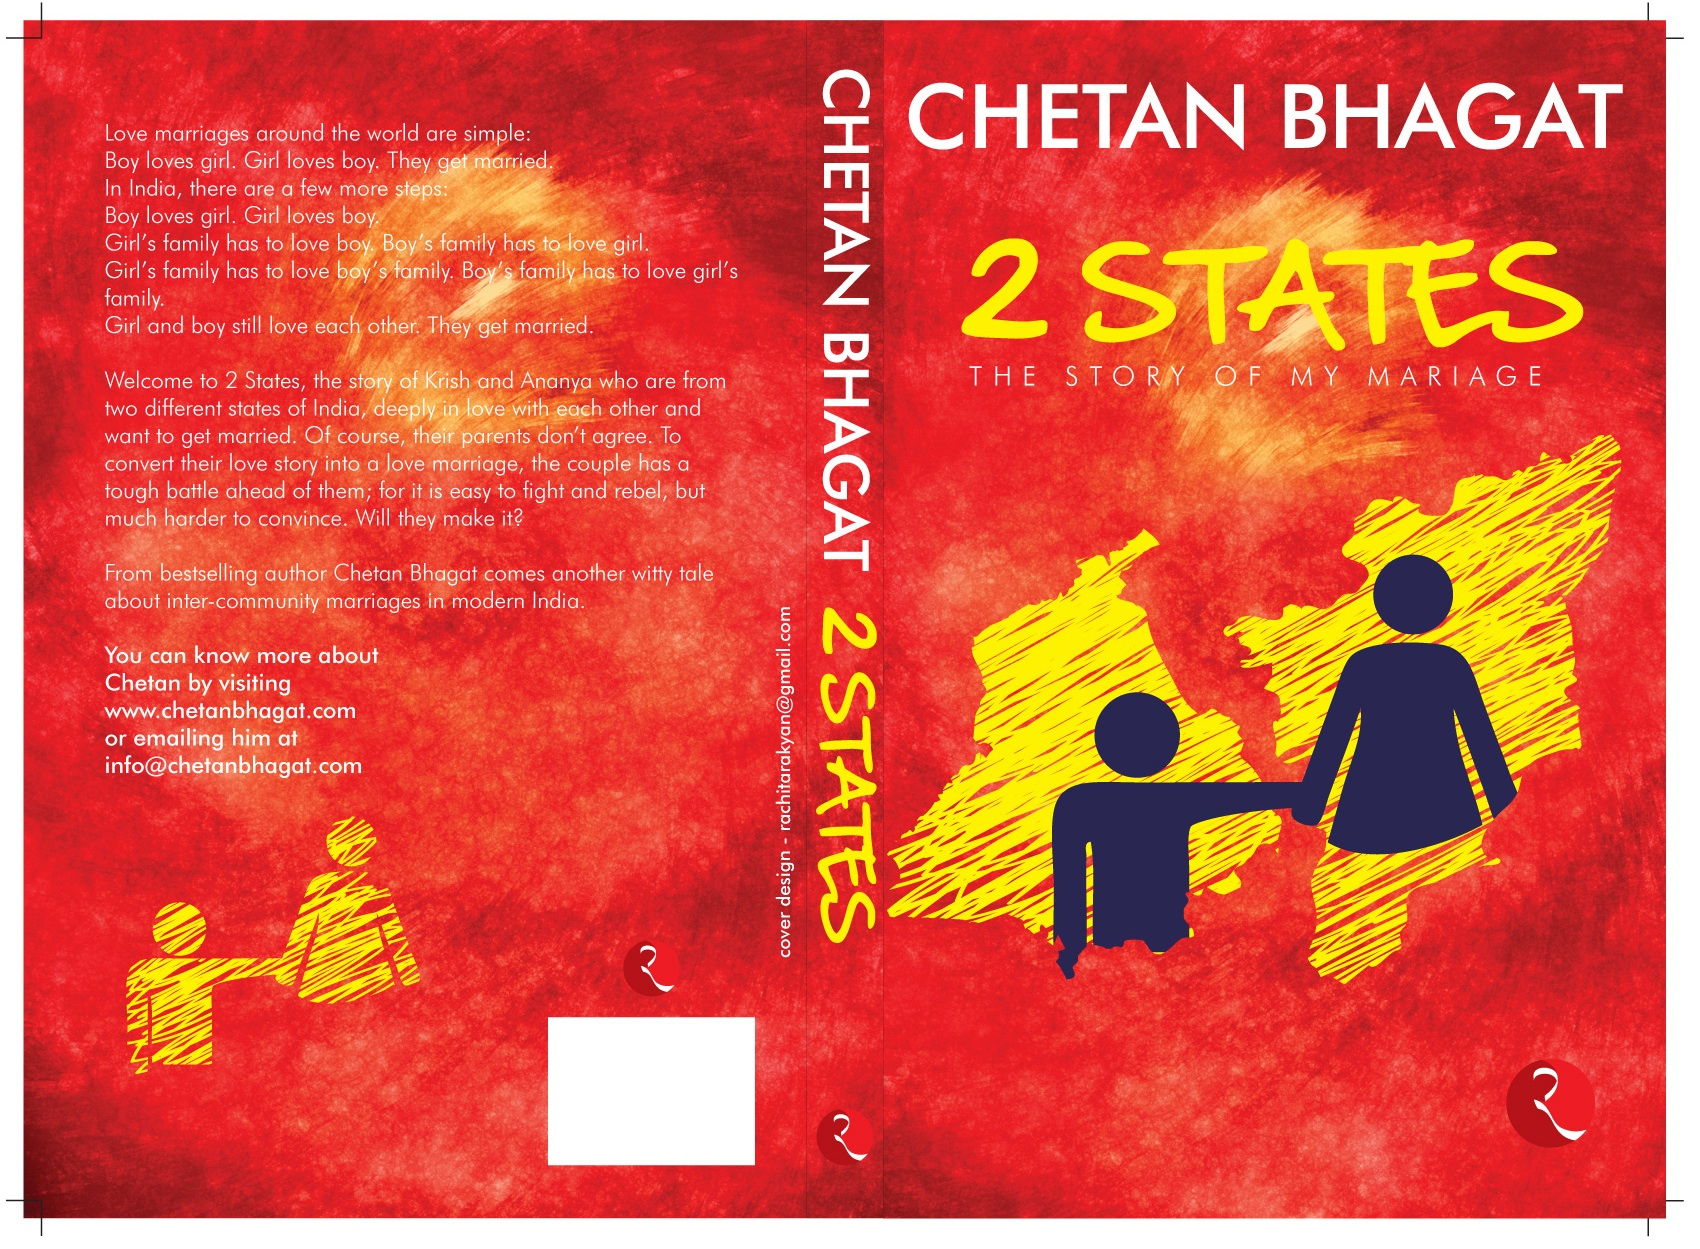 2 States The Story Of My Marriage By Chetan Bhagat By Ekta Books Nepal Online Shopping By Nepbay